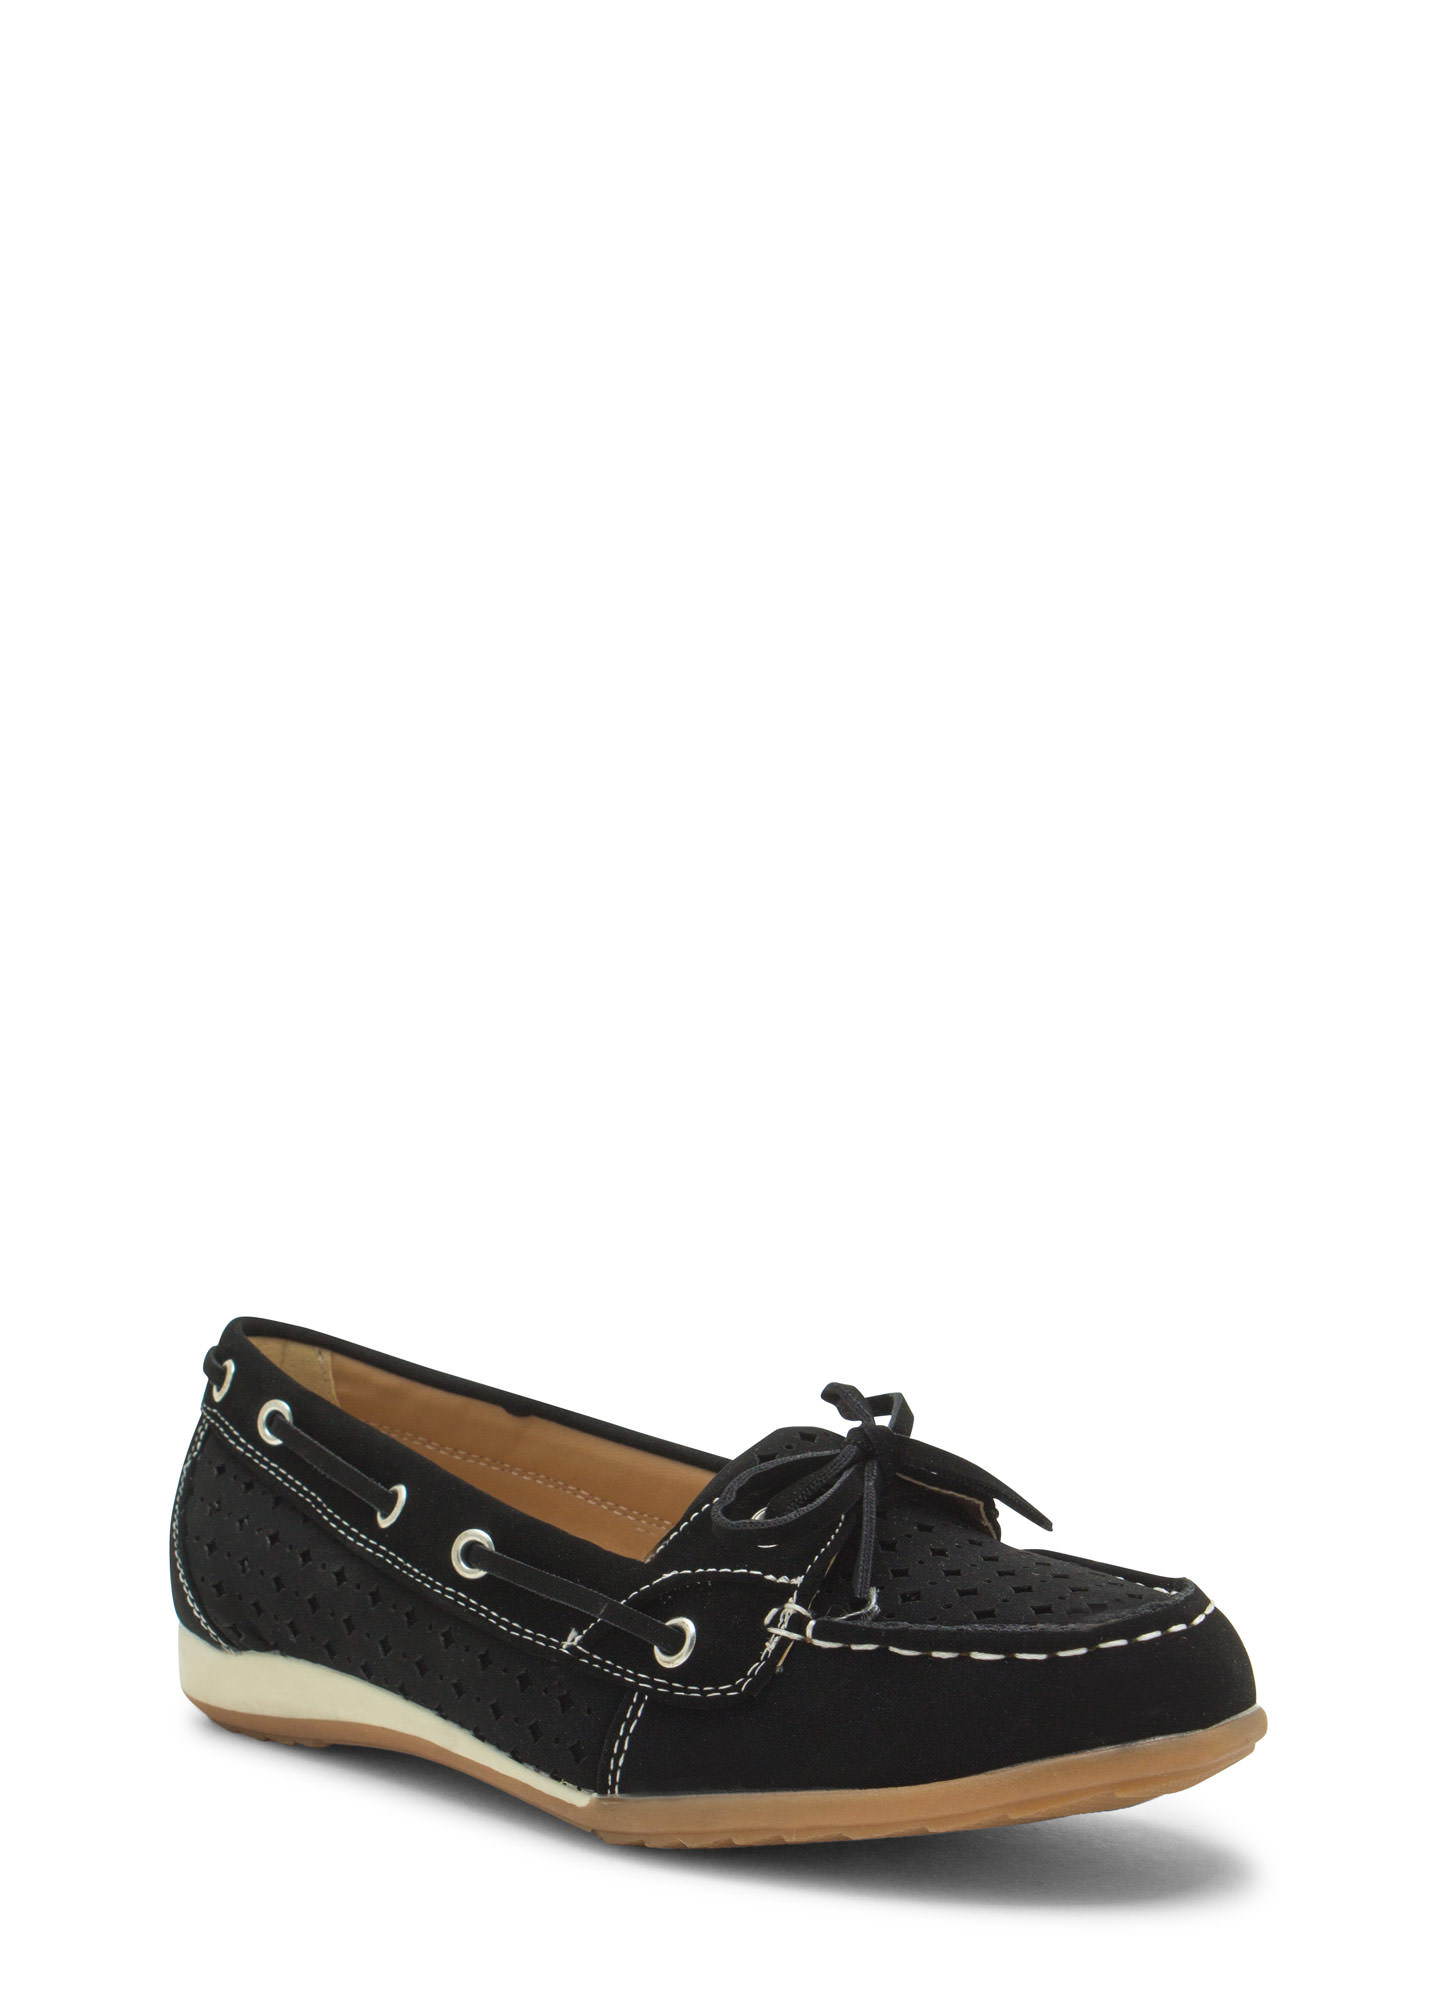 Perforated Faux Nubuck Boat Flats BLACK